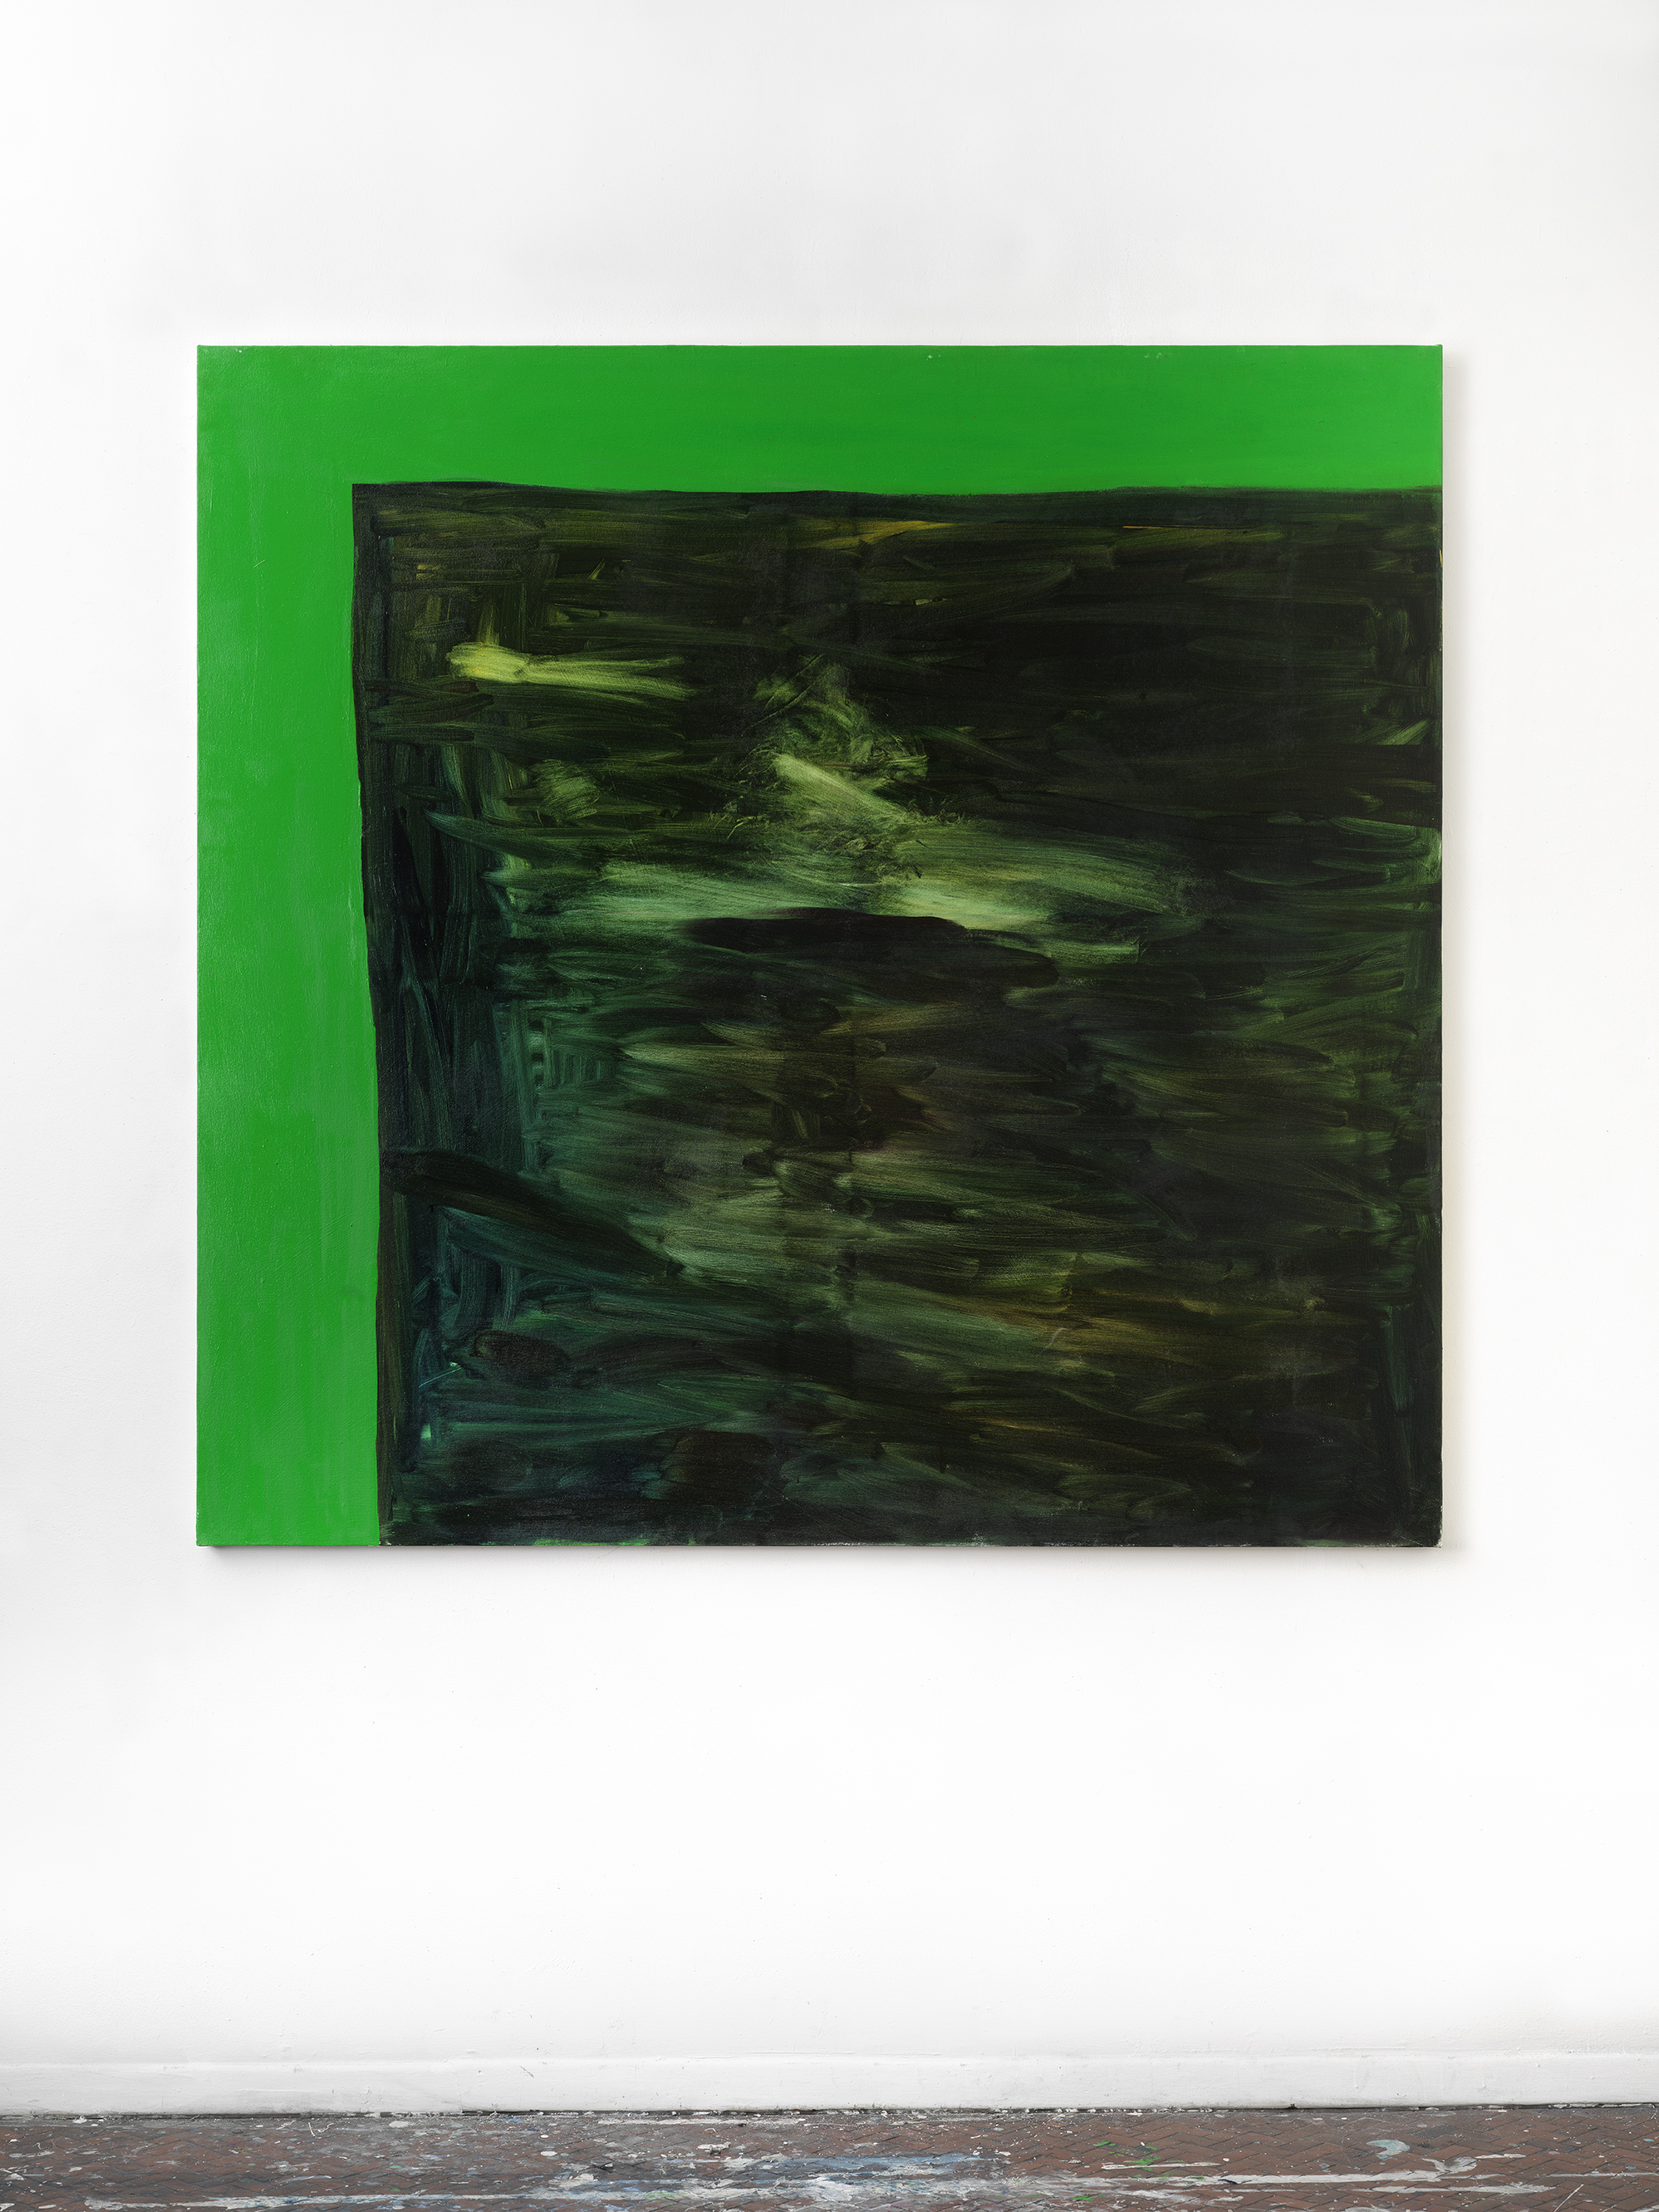 Green Screen #2 , 2018 54 x 56 inches, Oil on canvas